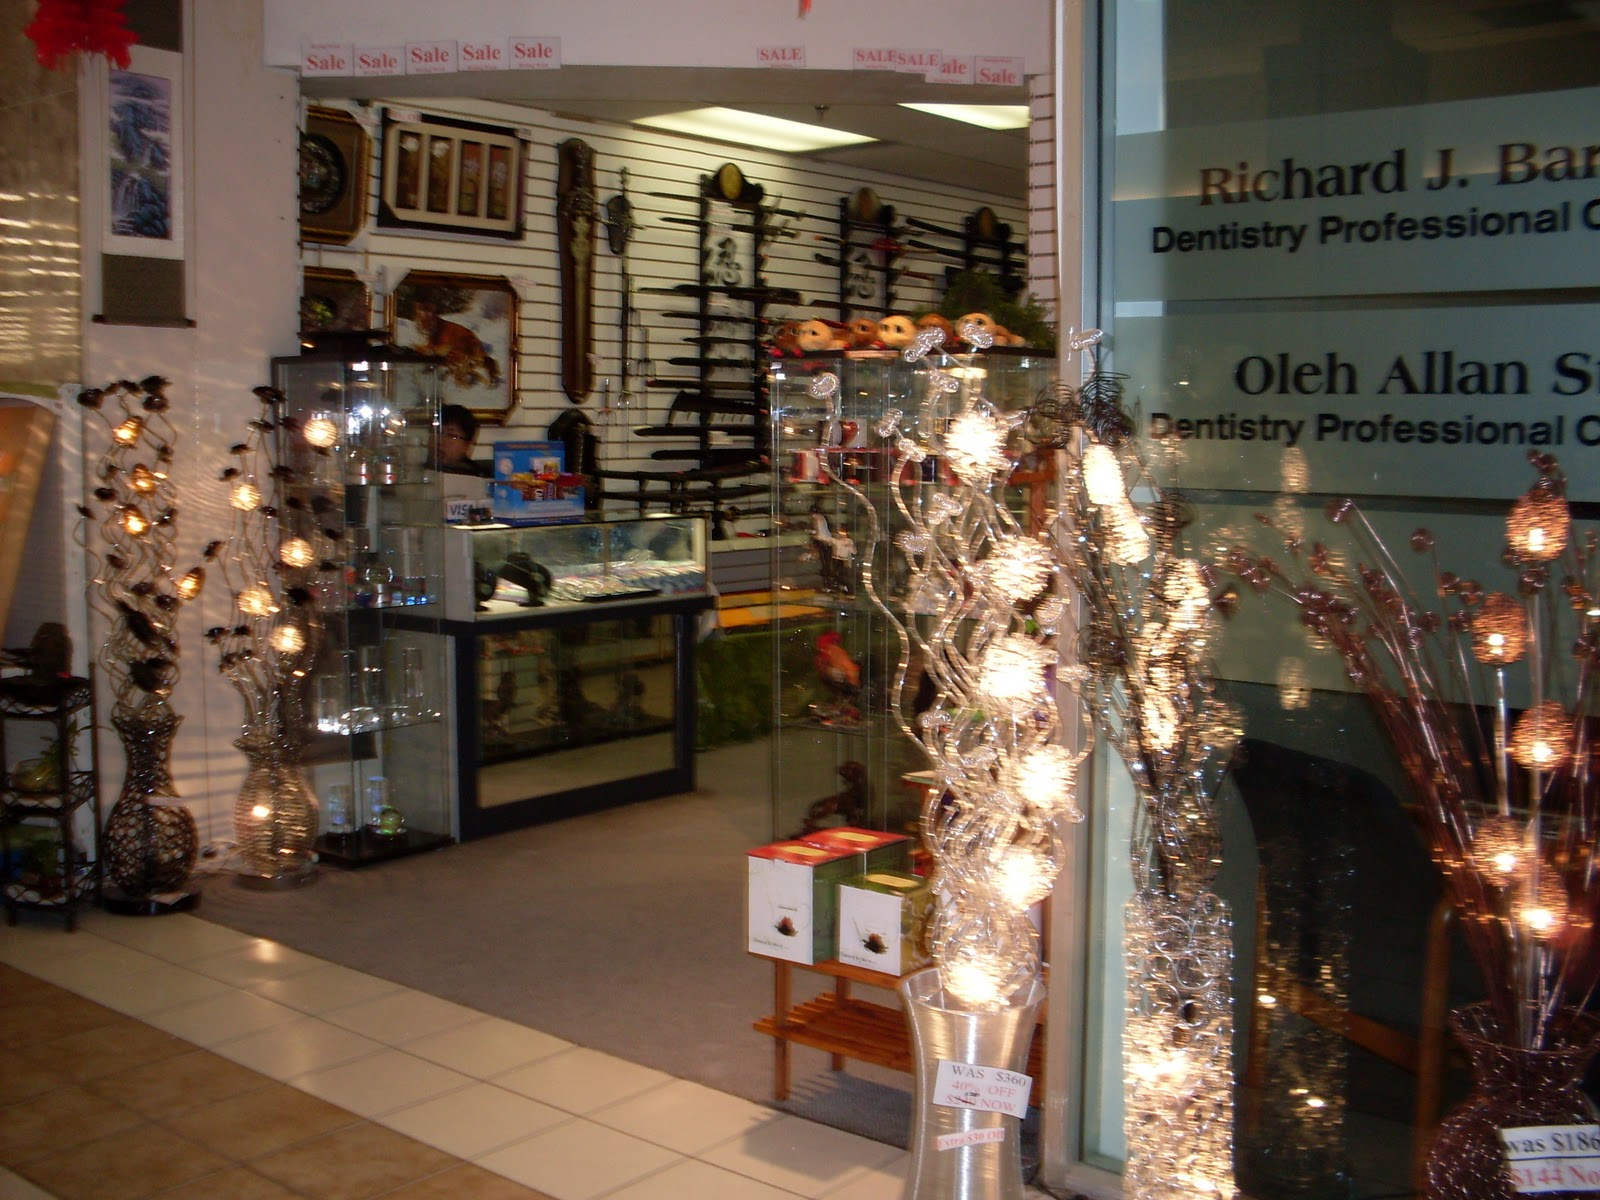 Igc entertainment canada c c arts glitter lamps st for Finesse interior design home decor st catharines on